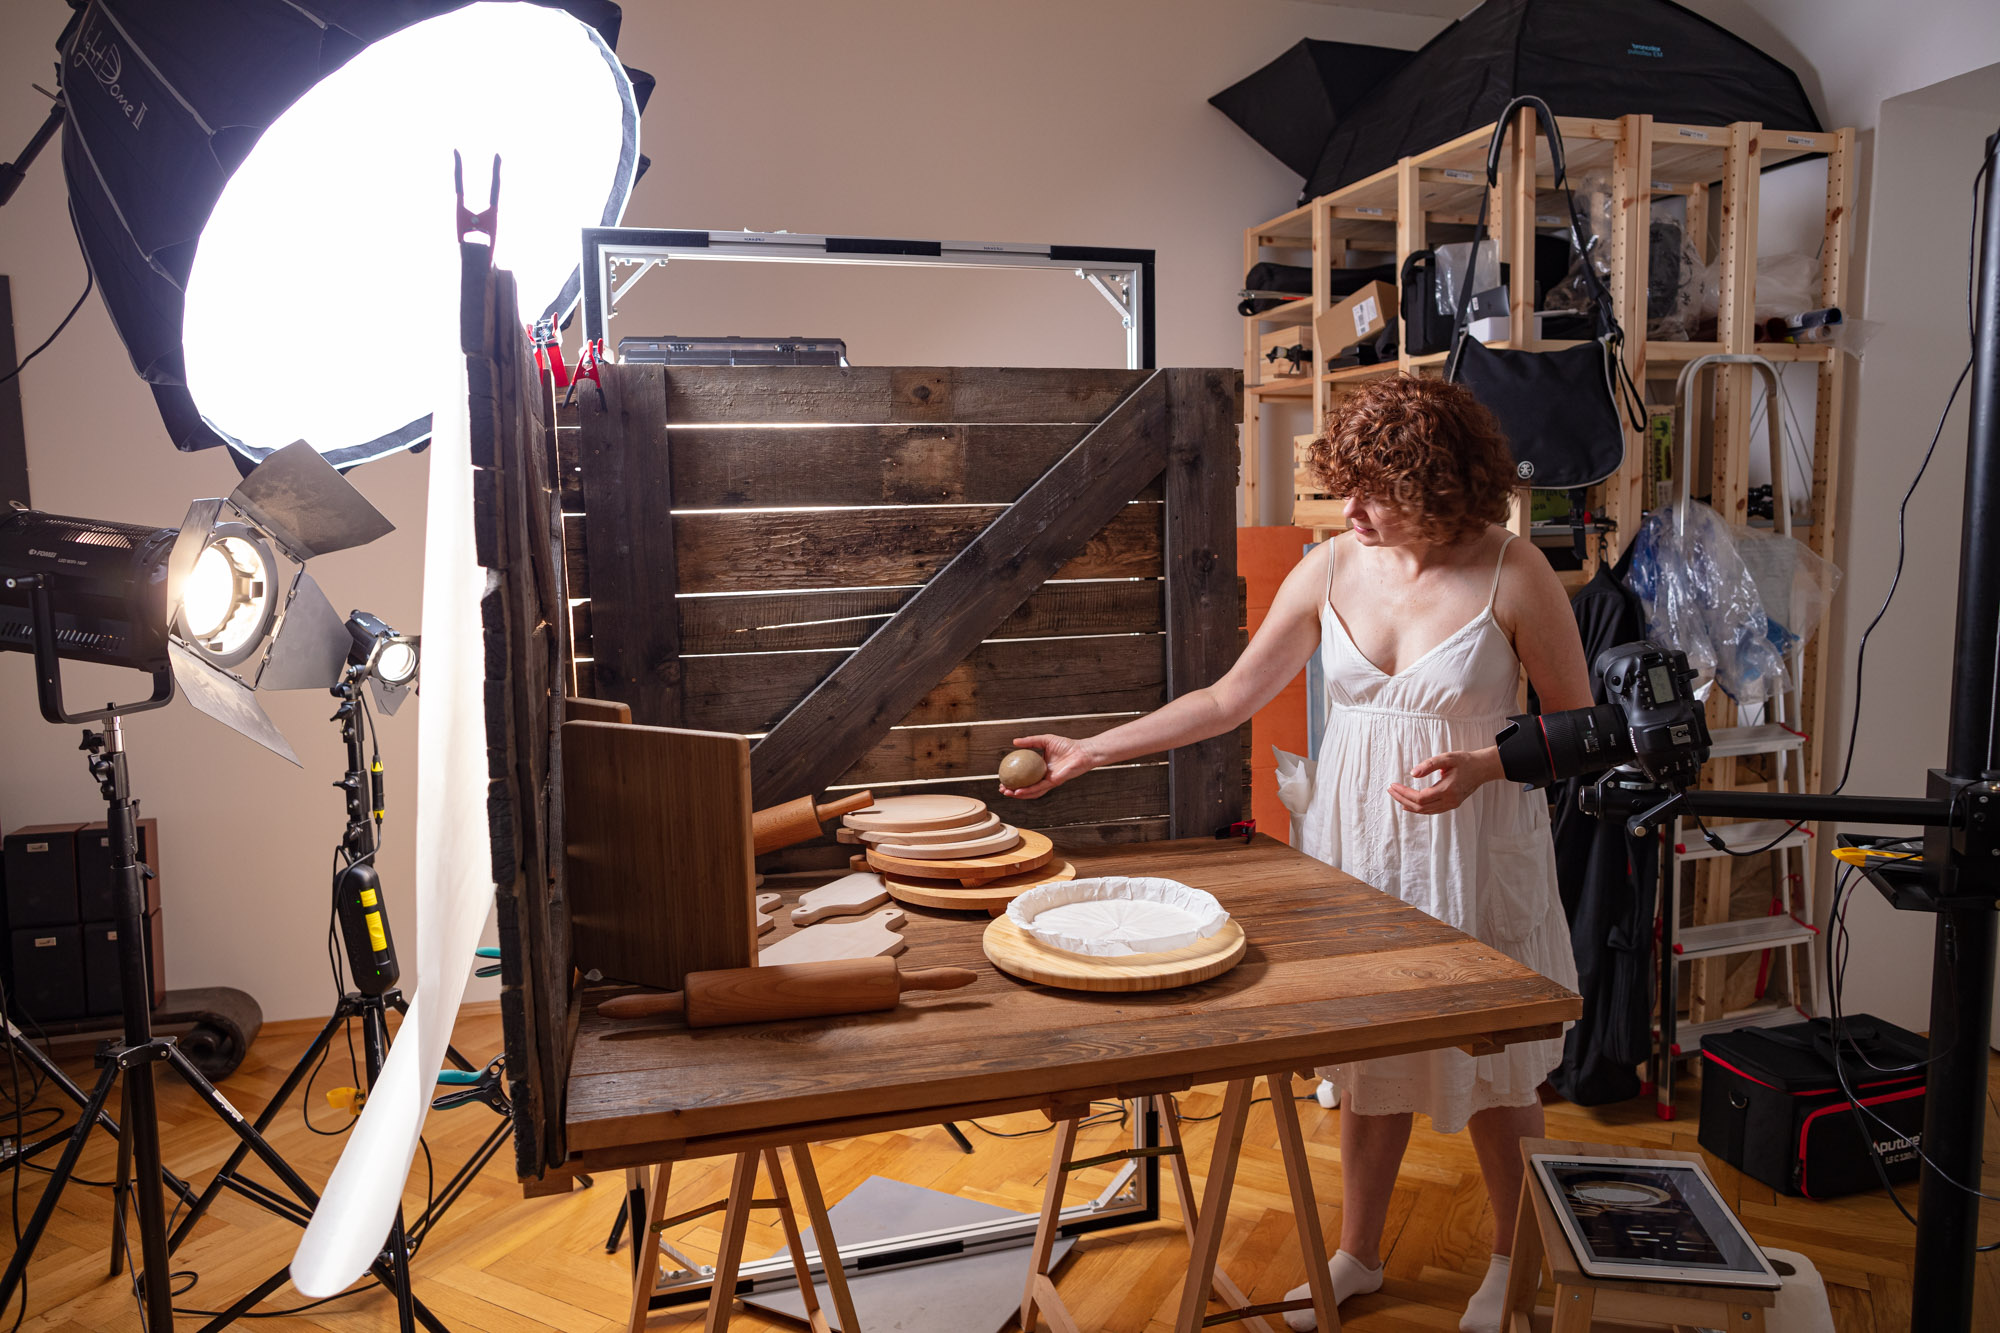 """Behind the scenes at the video production of """"Vegan Cherry Crumble Pie Recipe"""". A big table set up resembling a """"barn"""". In a studio with various lamps and cameras. The stylist/art director is preparing the scene."""